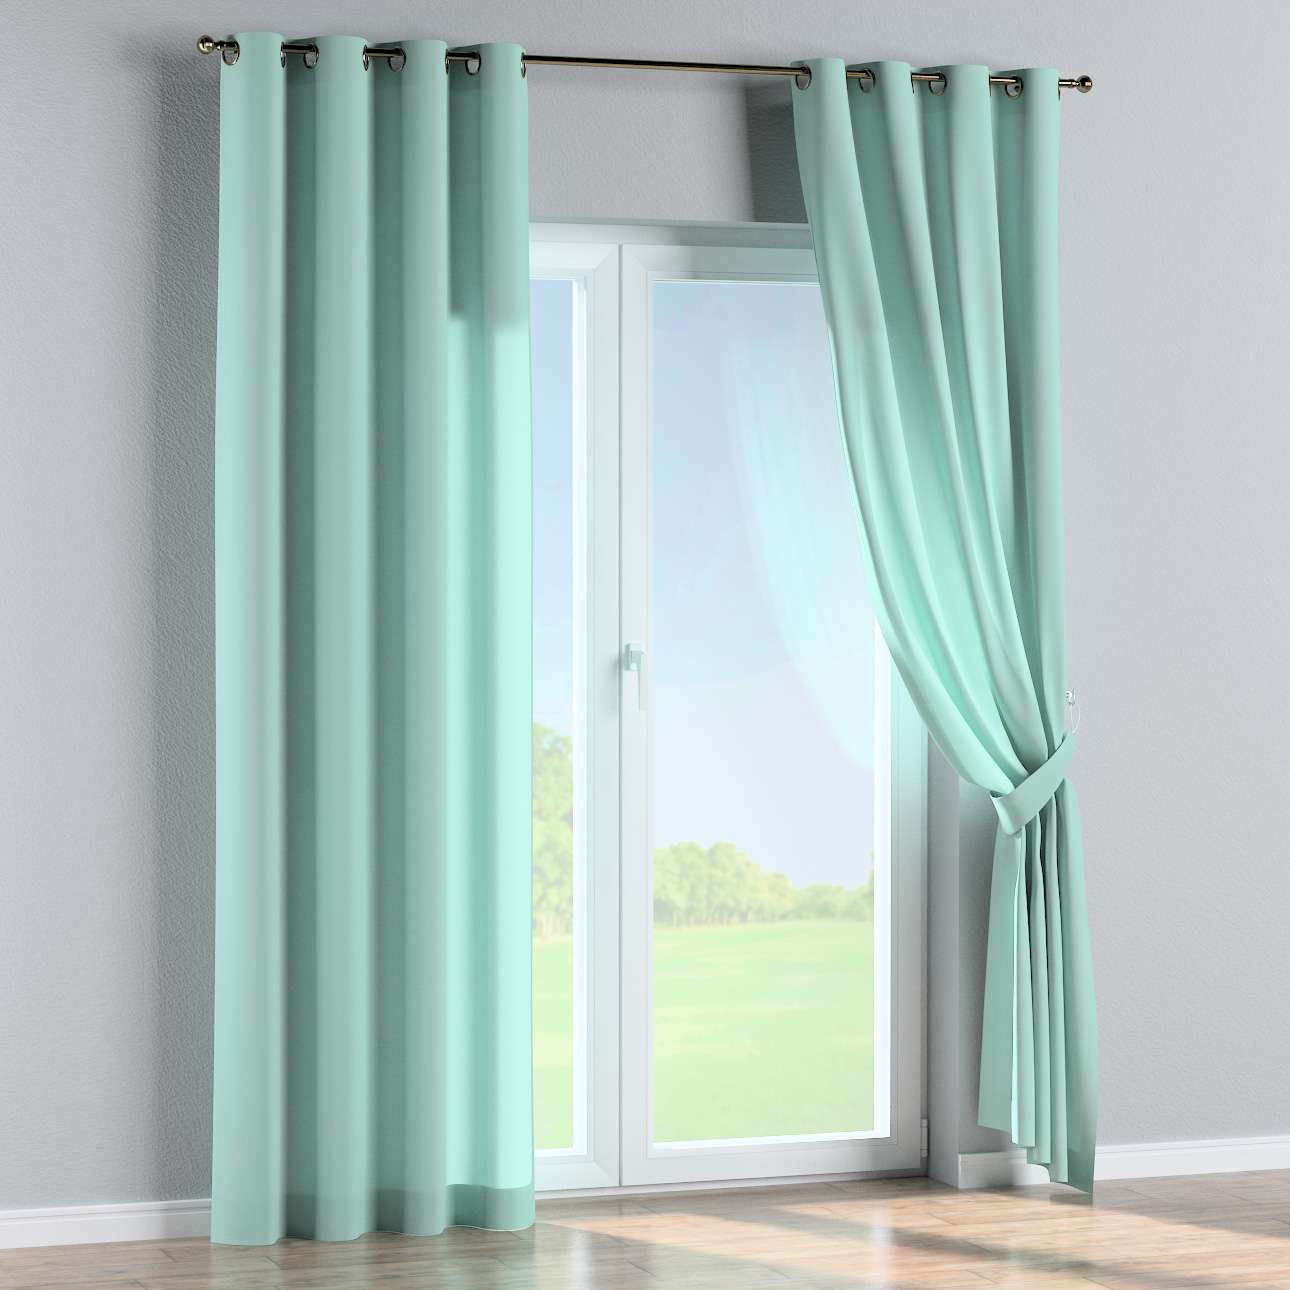 Eyelet curtains 130 x 260 cm (51 x 102 inch) in collection Loneta , fabric: 133-32